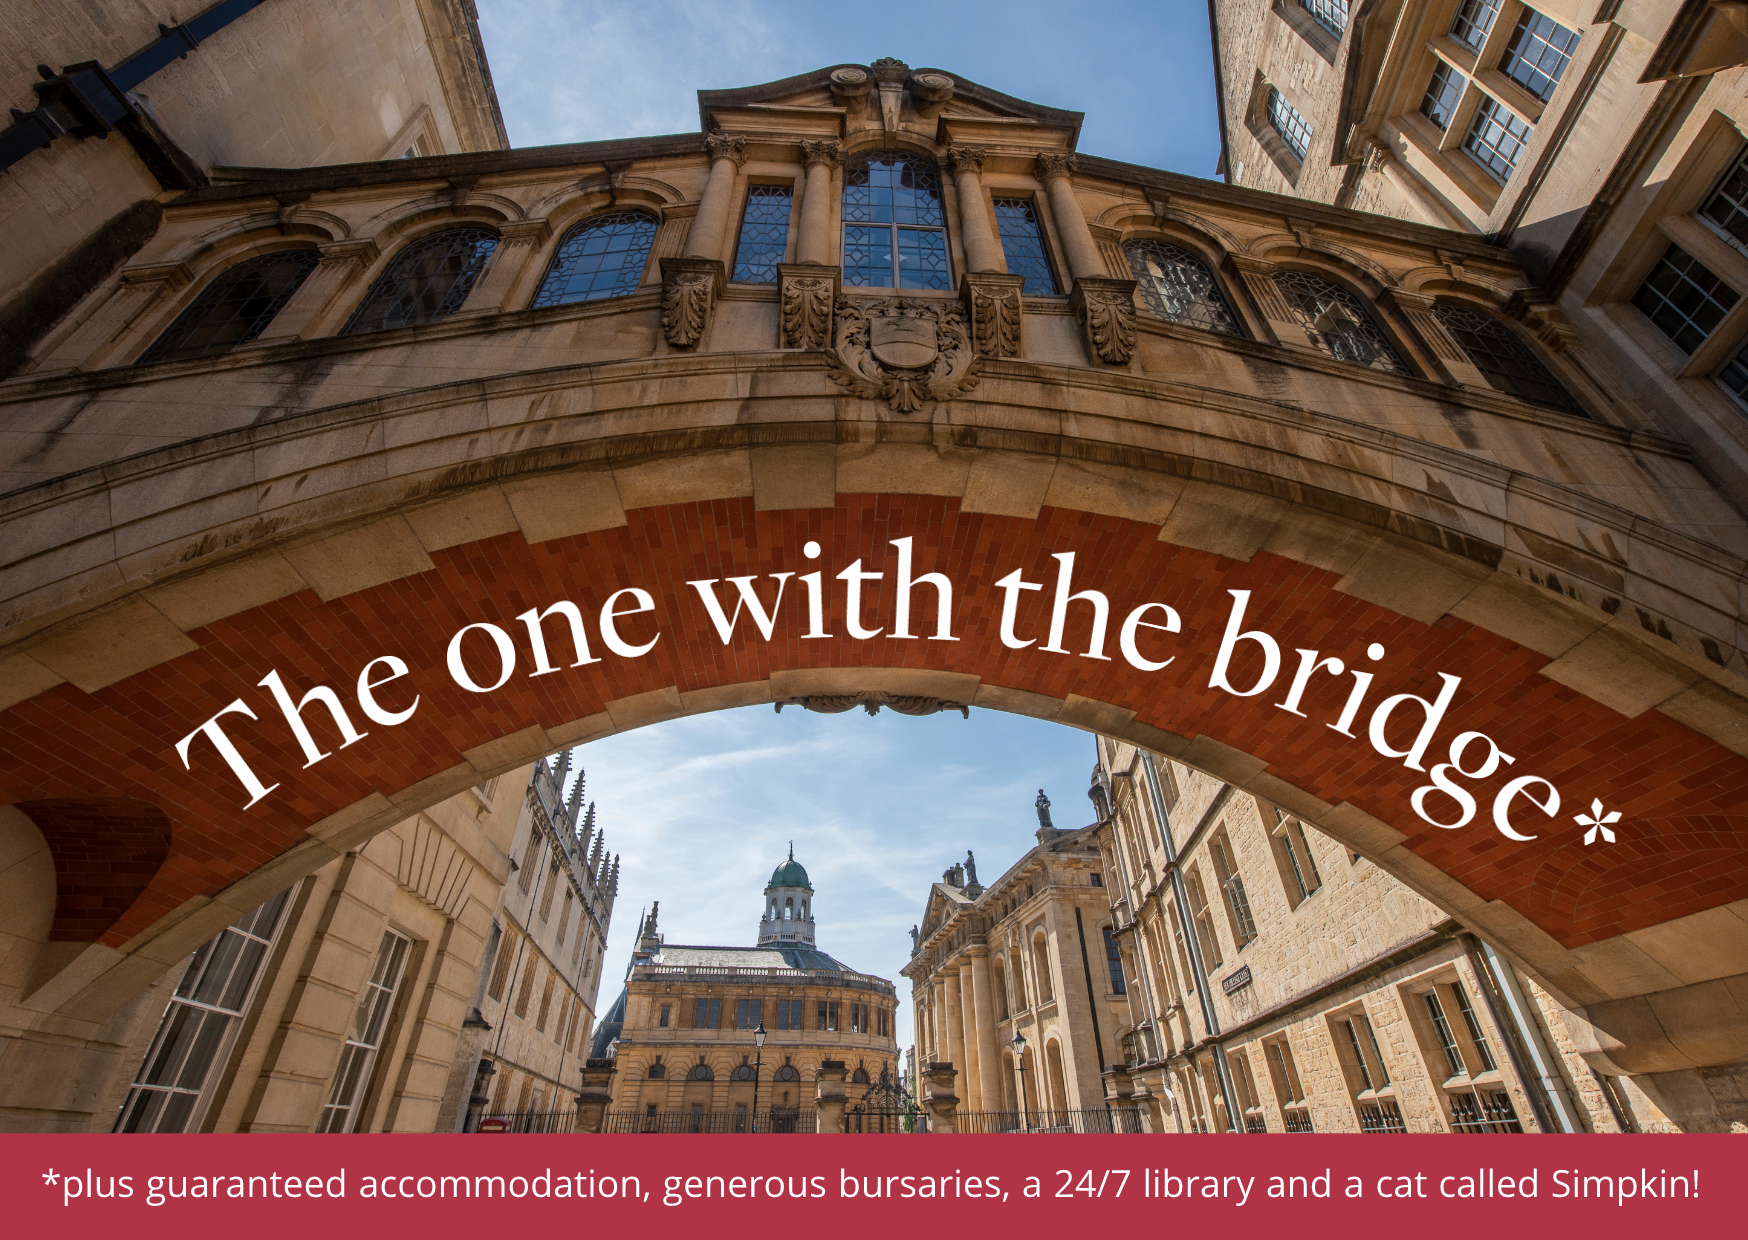 Hertford - The One with the Bridge